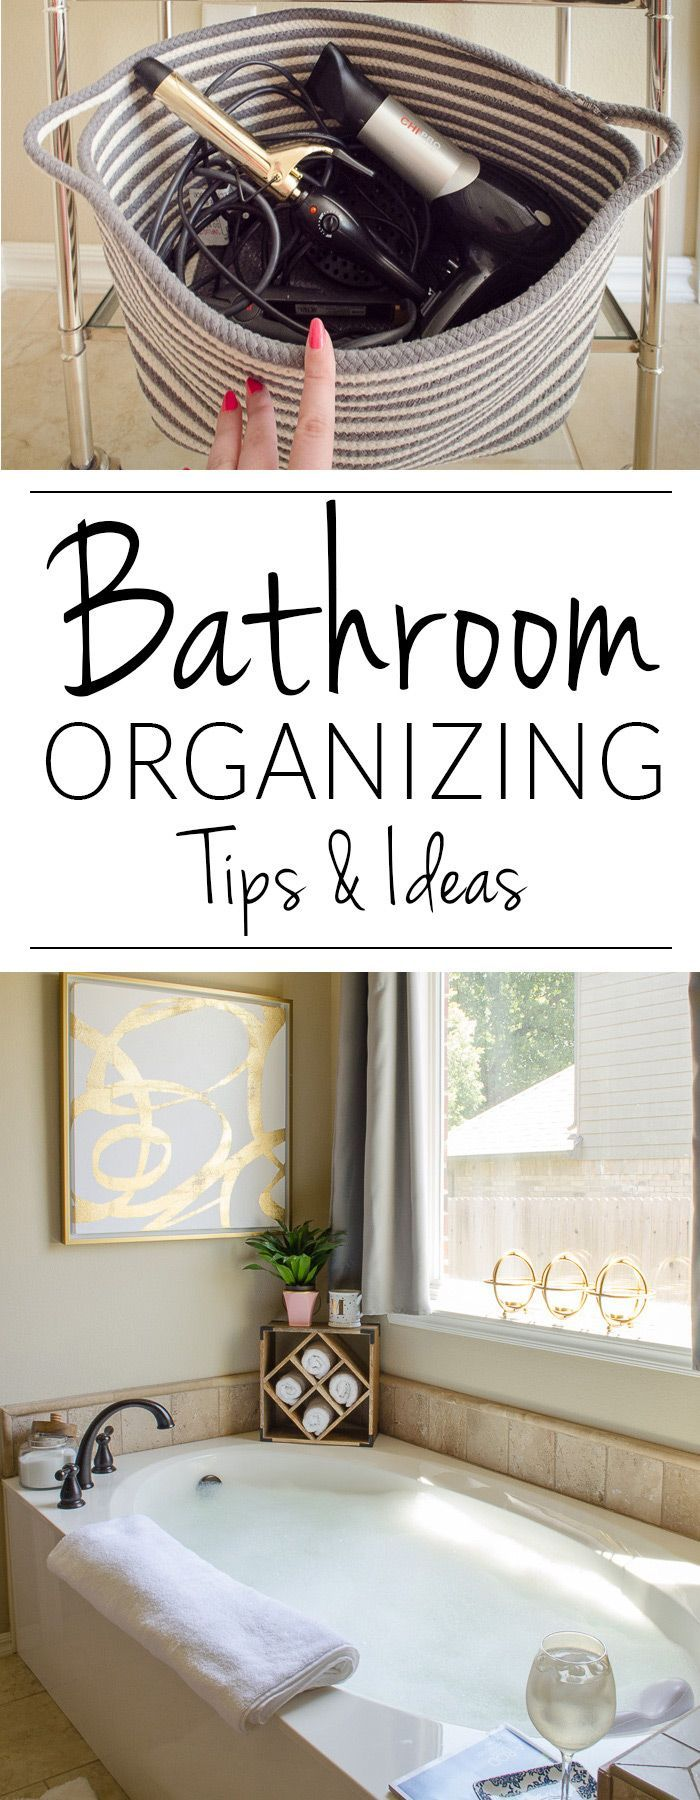 Organize and decorate your master bathroom at the same time with these clever tips for organizing your bathroom in style.